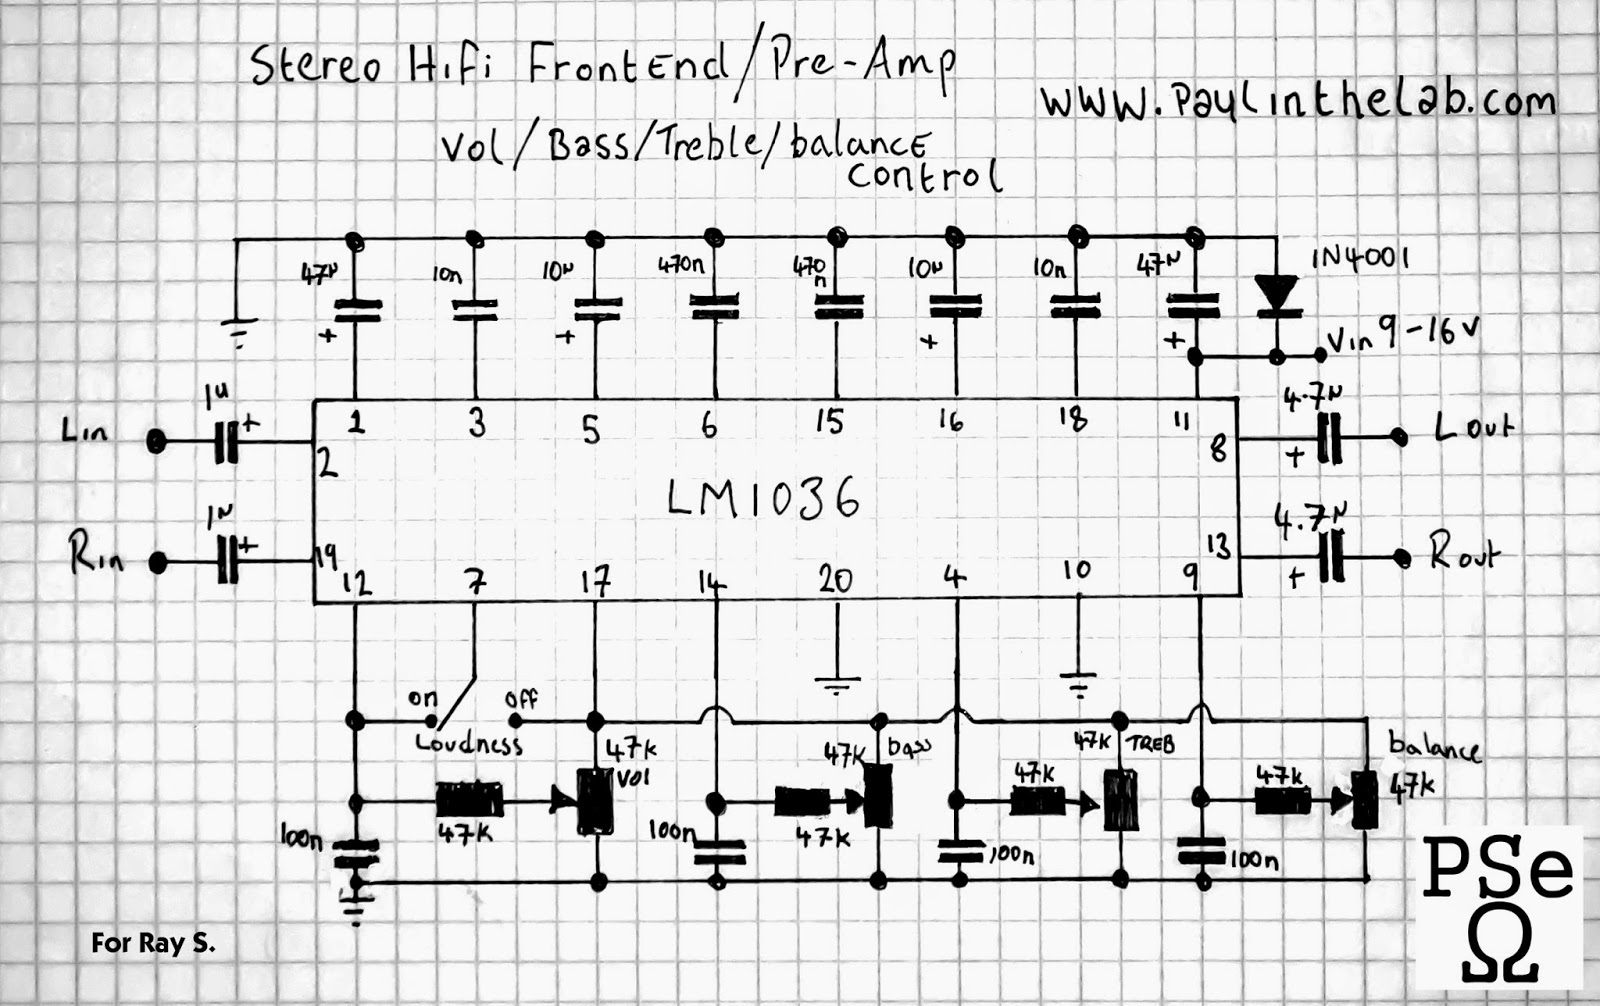 Paul In The Lab Lm1036 Hifi Preamp And Tone Control Stripboard Treble All Pots Are 47k Linear Voltage Range Is Between 9 16volts Official Datasheet Can Be Found Here